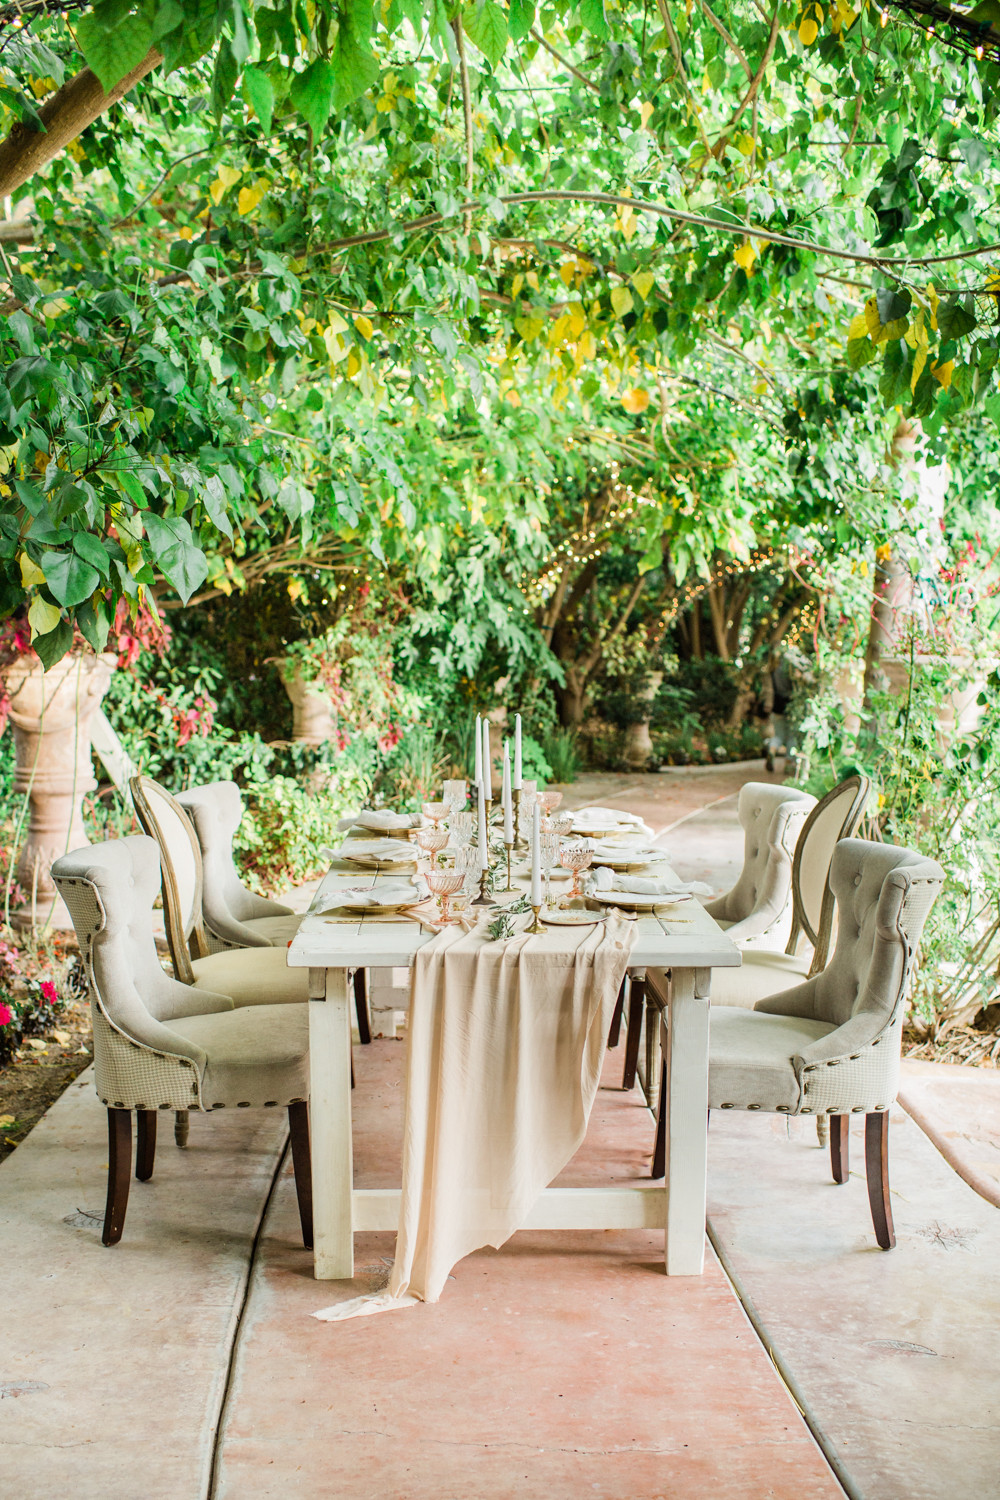 Dining table set under a canopy of trees